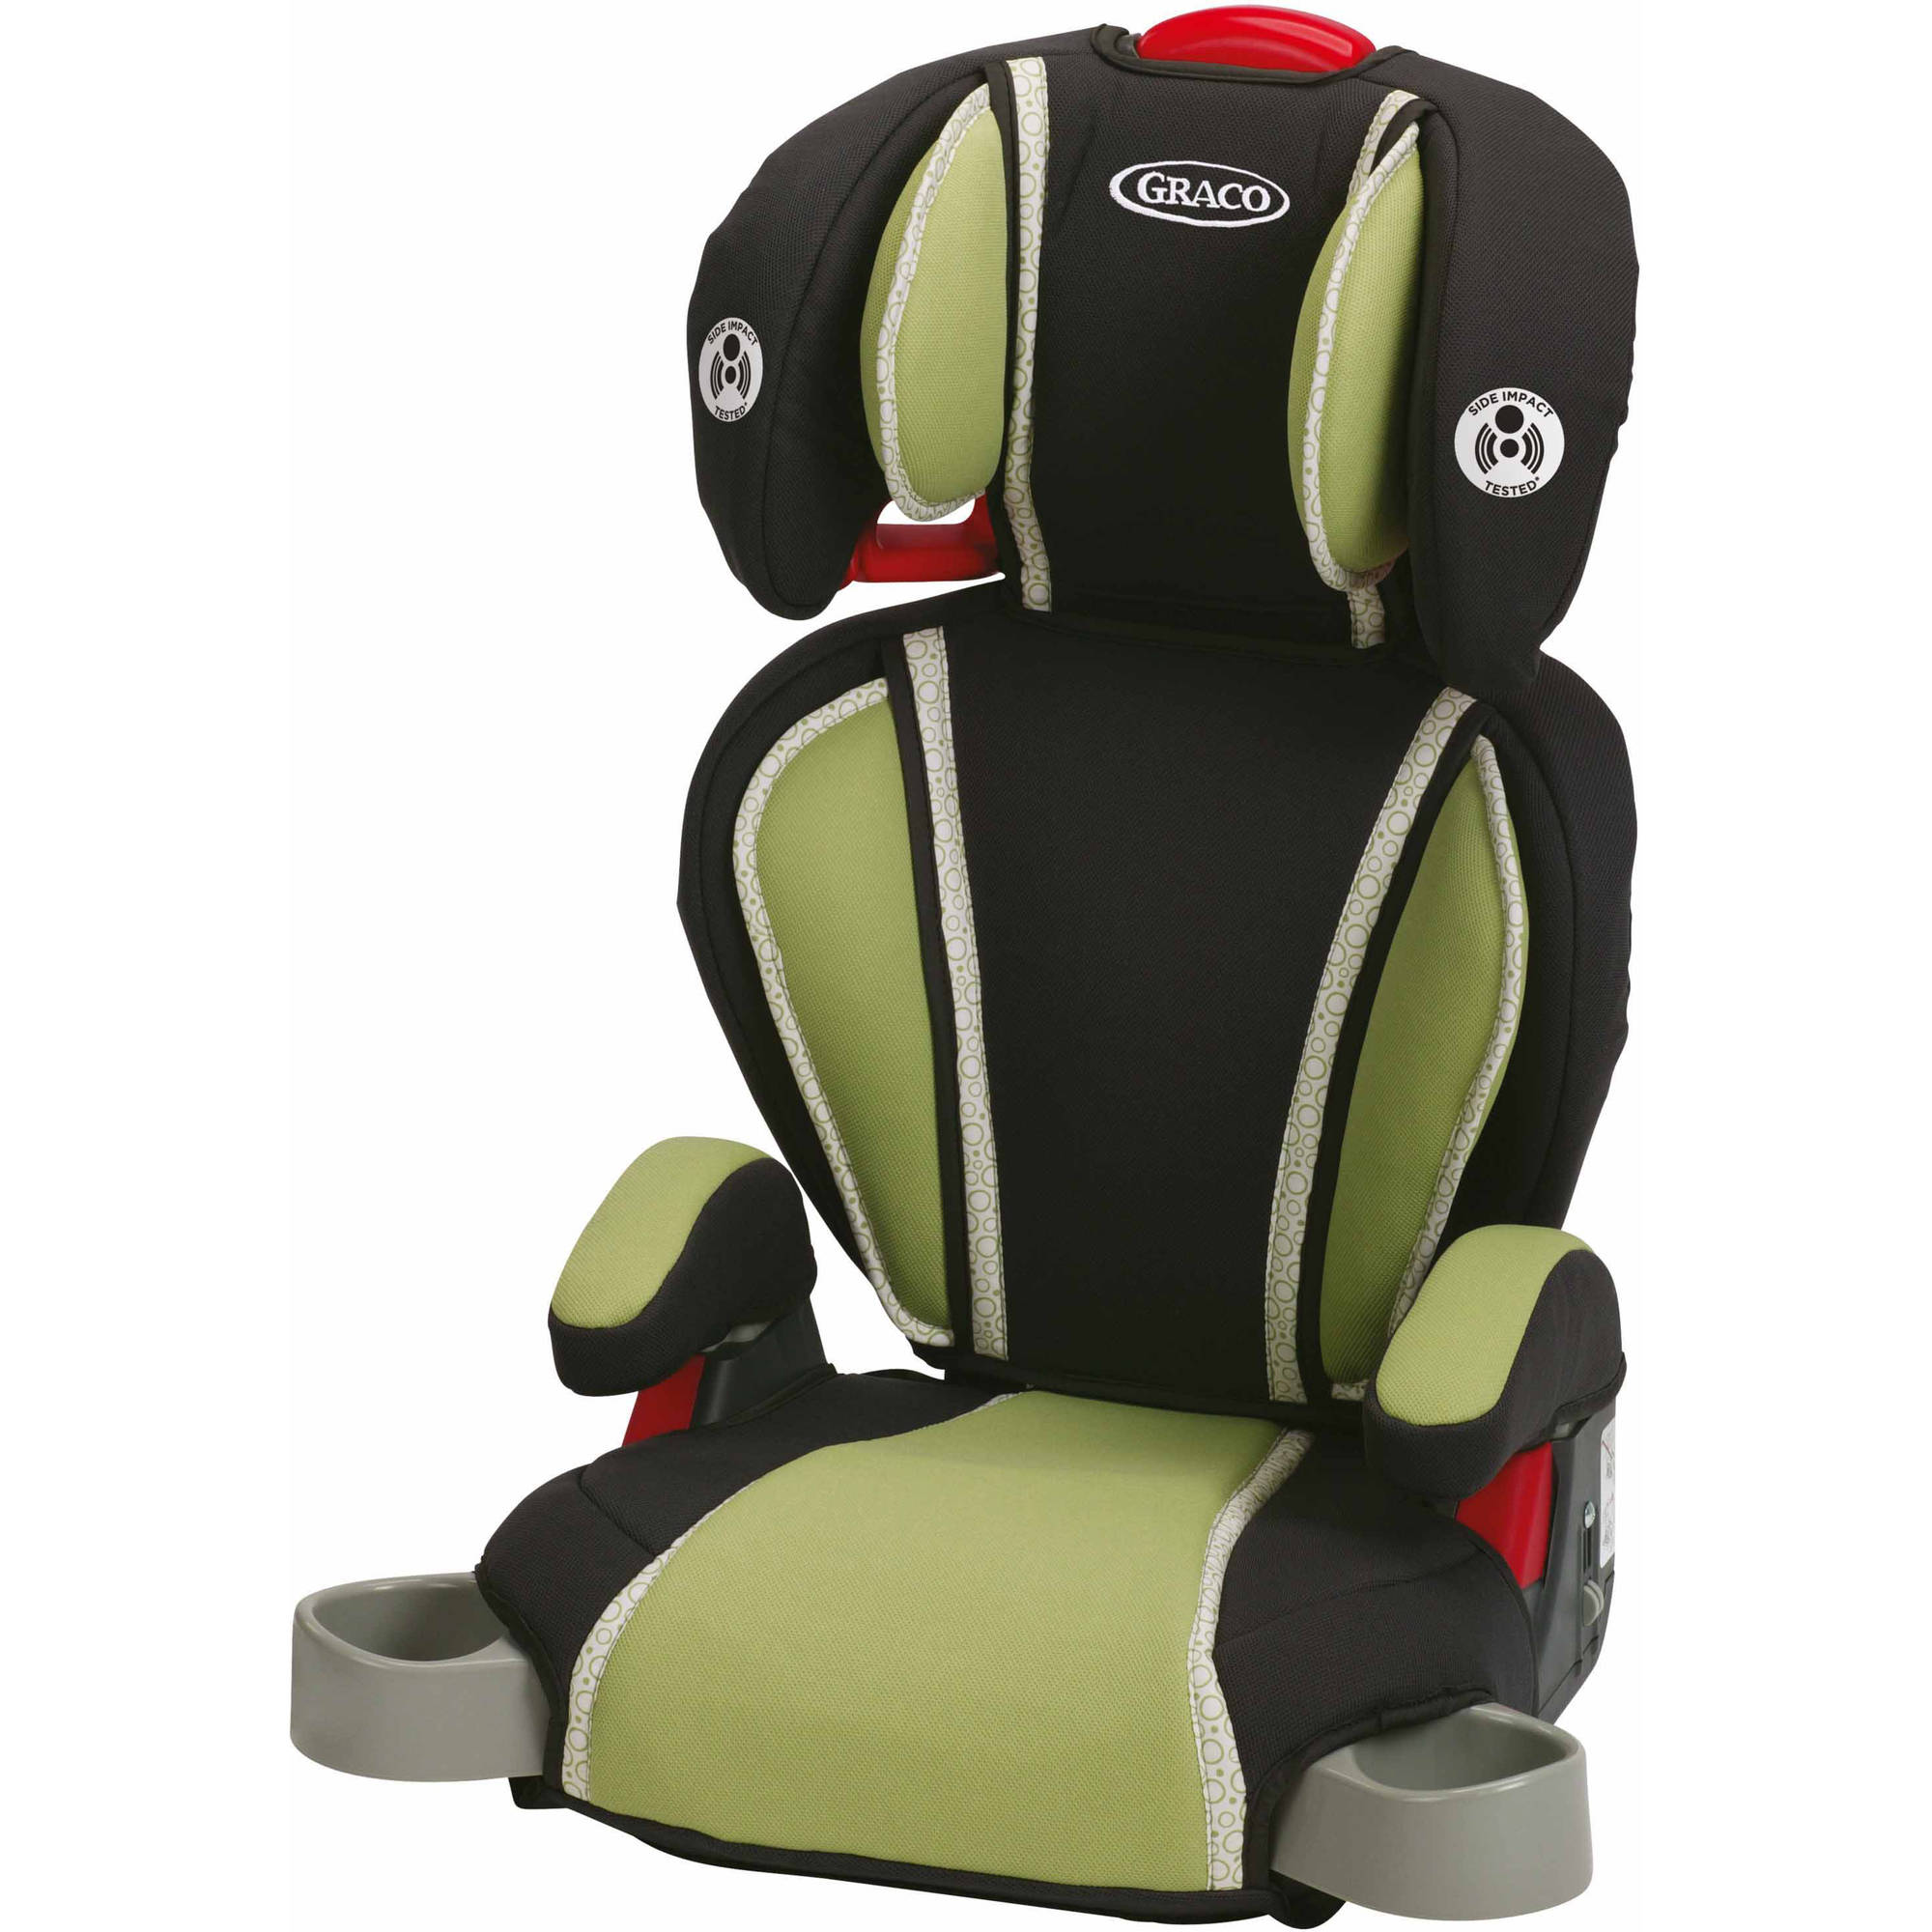 Graco Highback TurboBooster Booster Seat, Go Green